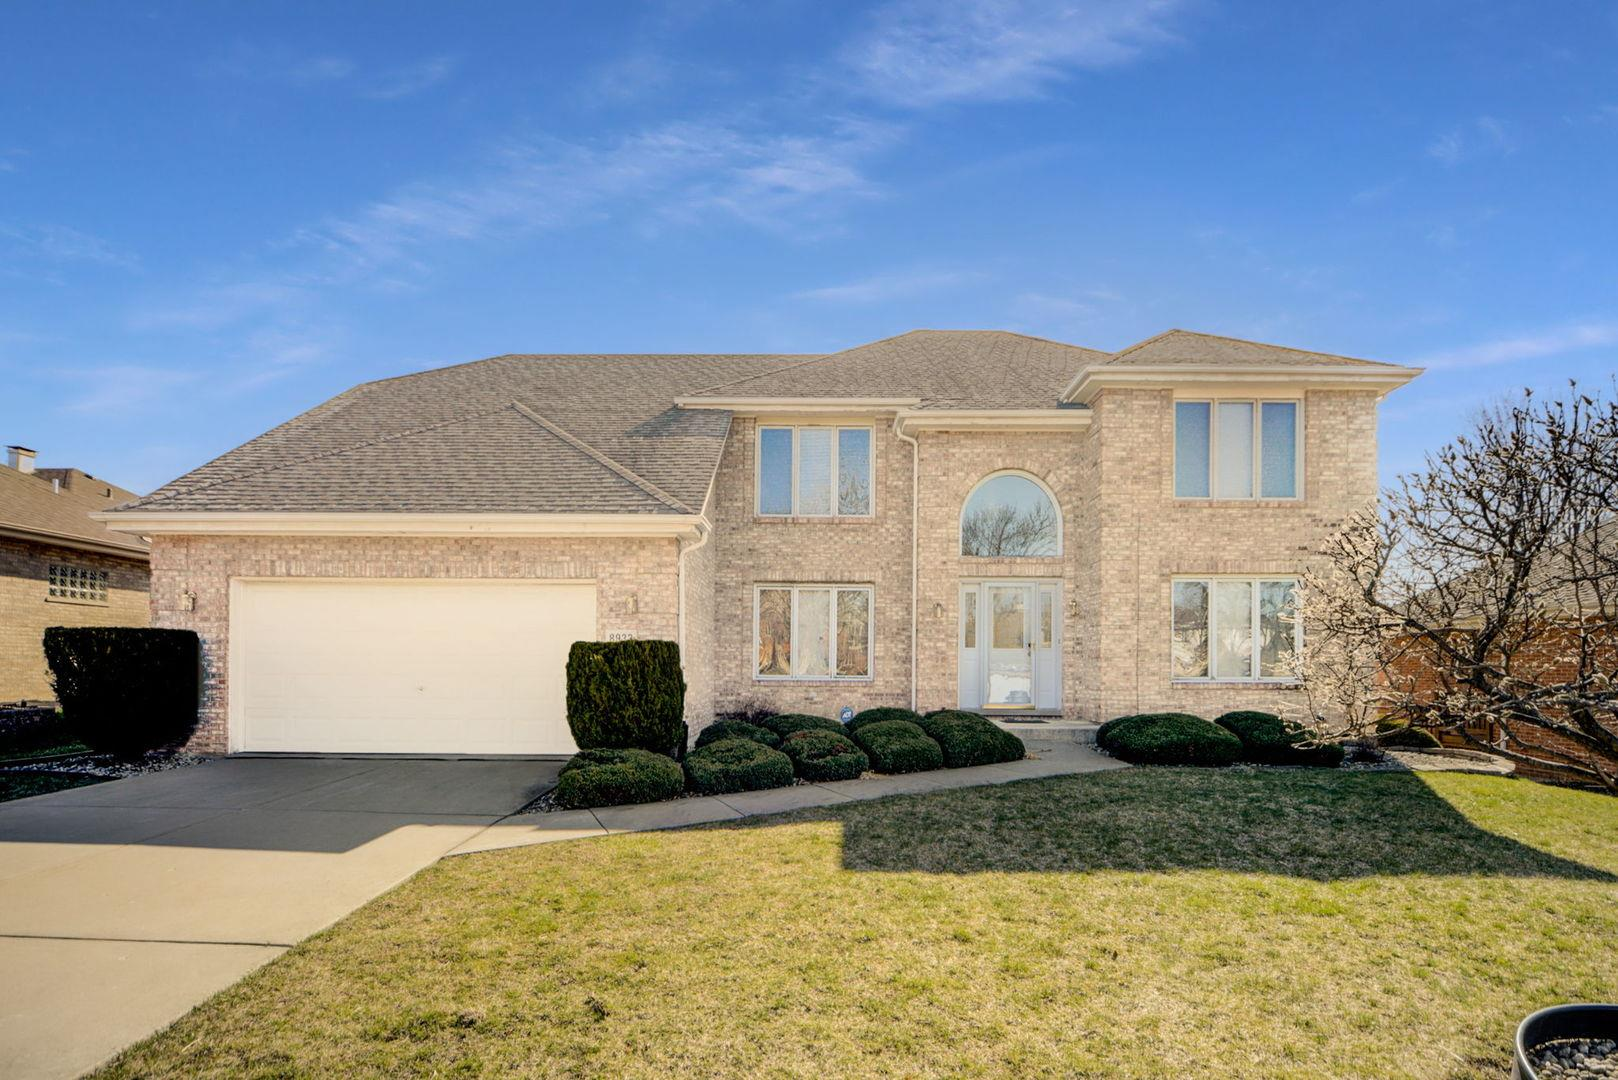 8933 Middleton Road, Darien, IL 60561 - #: 11067858